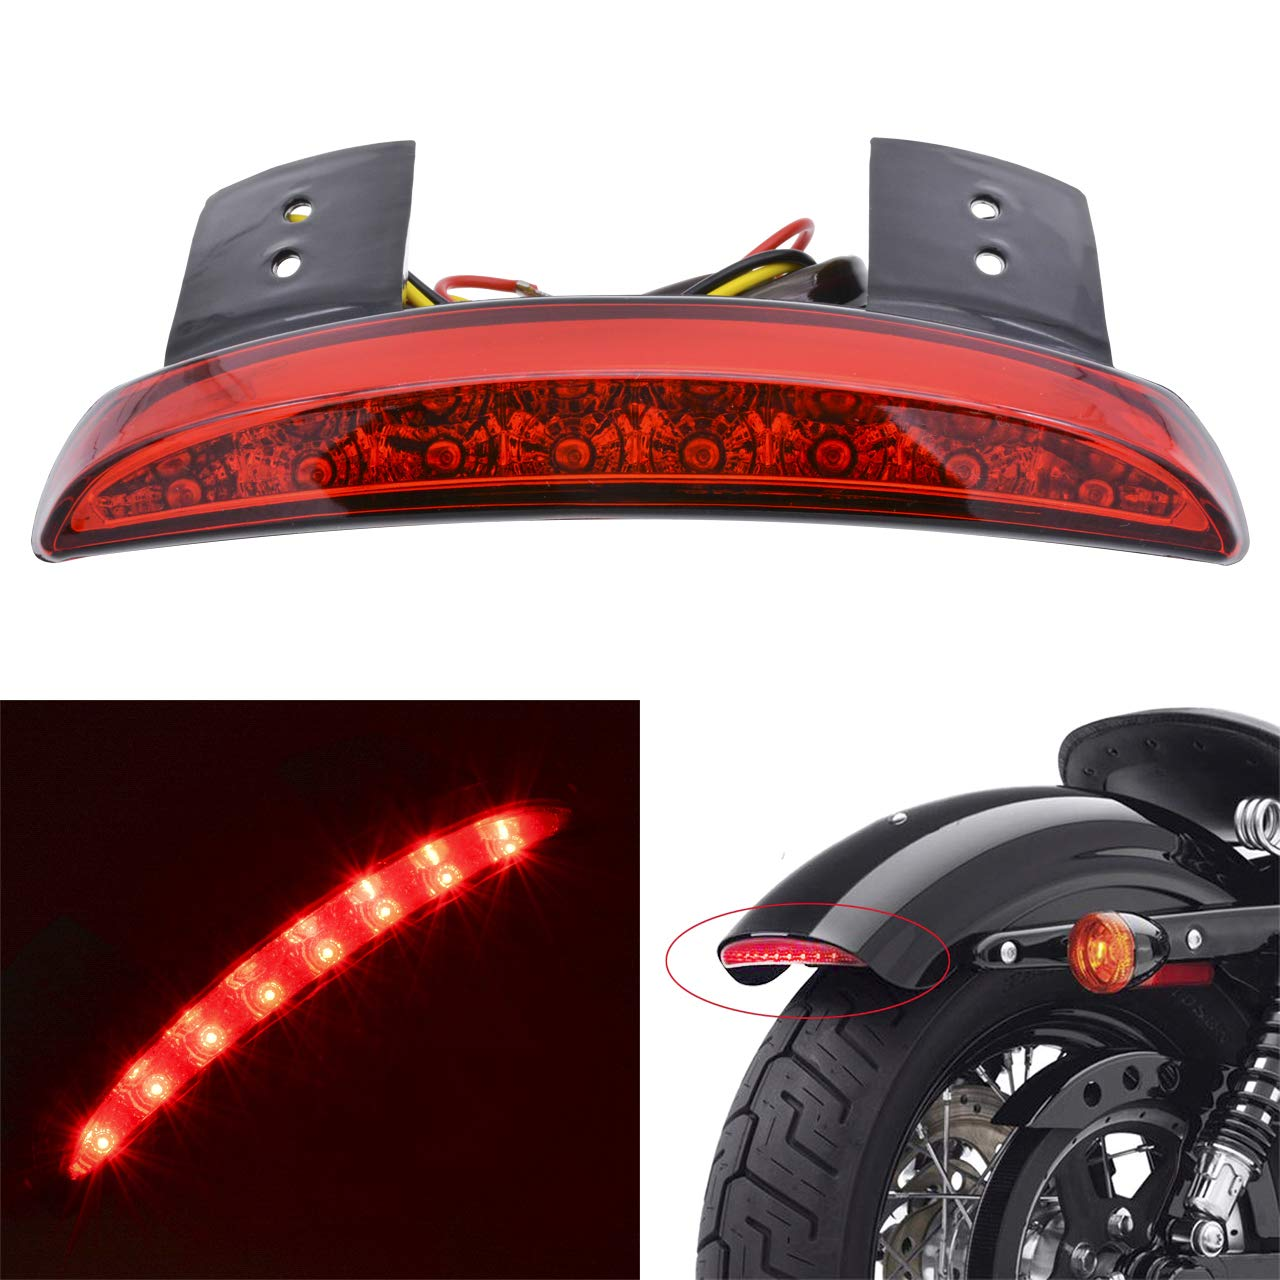 KaTur Red Chopped Fender Edge Motorcycle 8 LED RED Stop Running Brake Rear Tail Light for Harley Sportster XL 883N 1200N XL1200V XL1200X AMMP-820-Red Shell